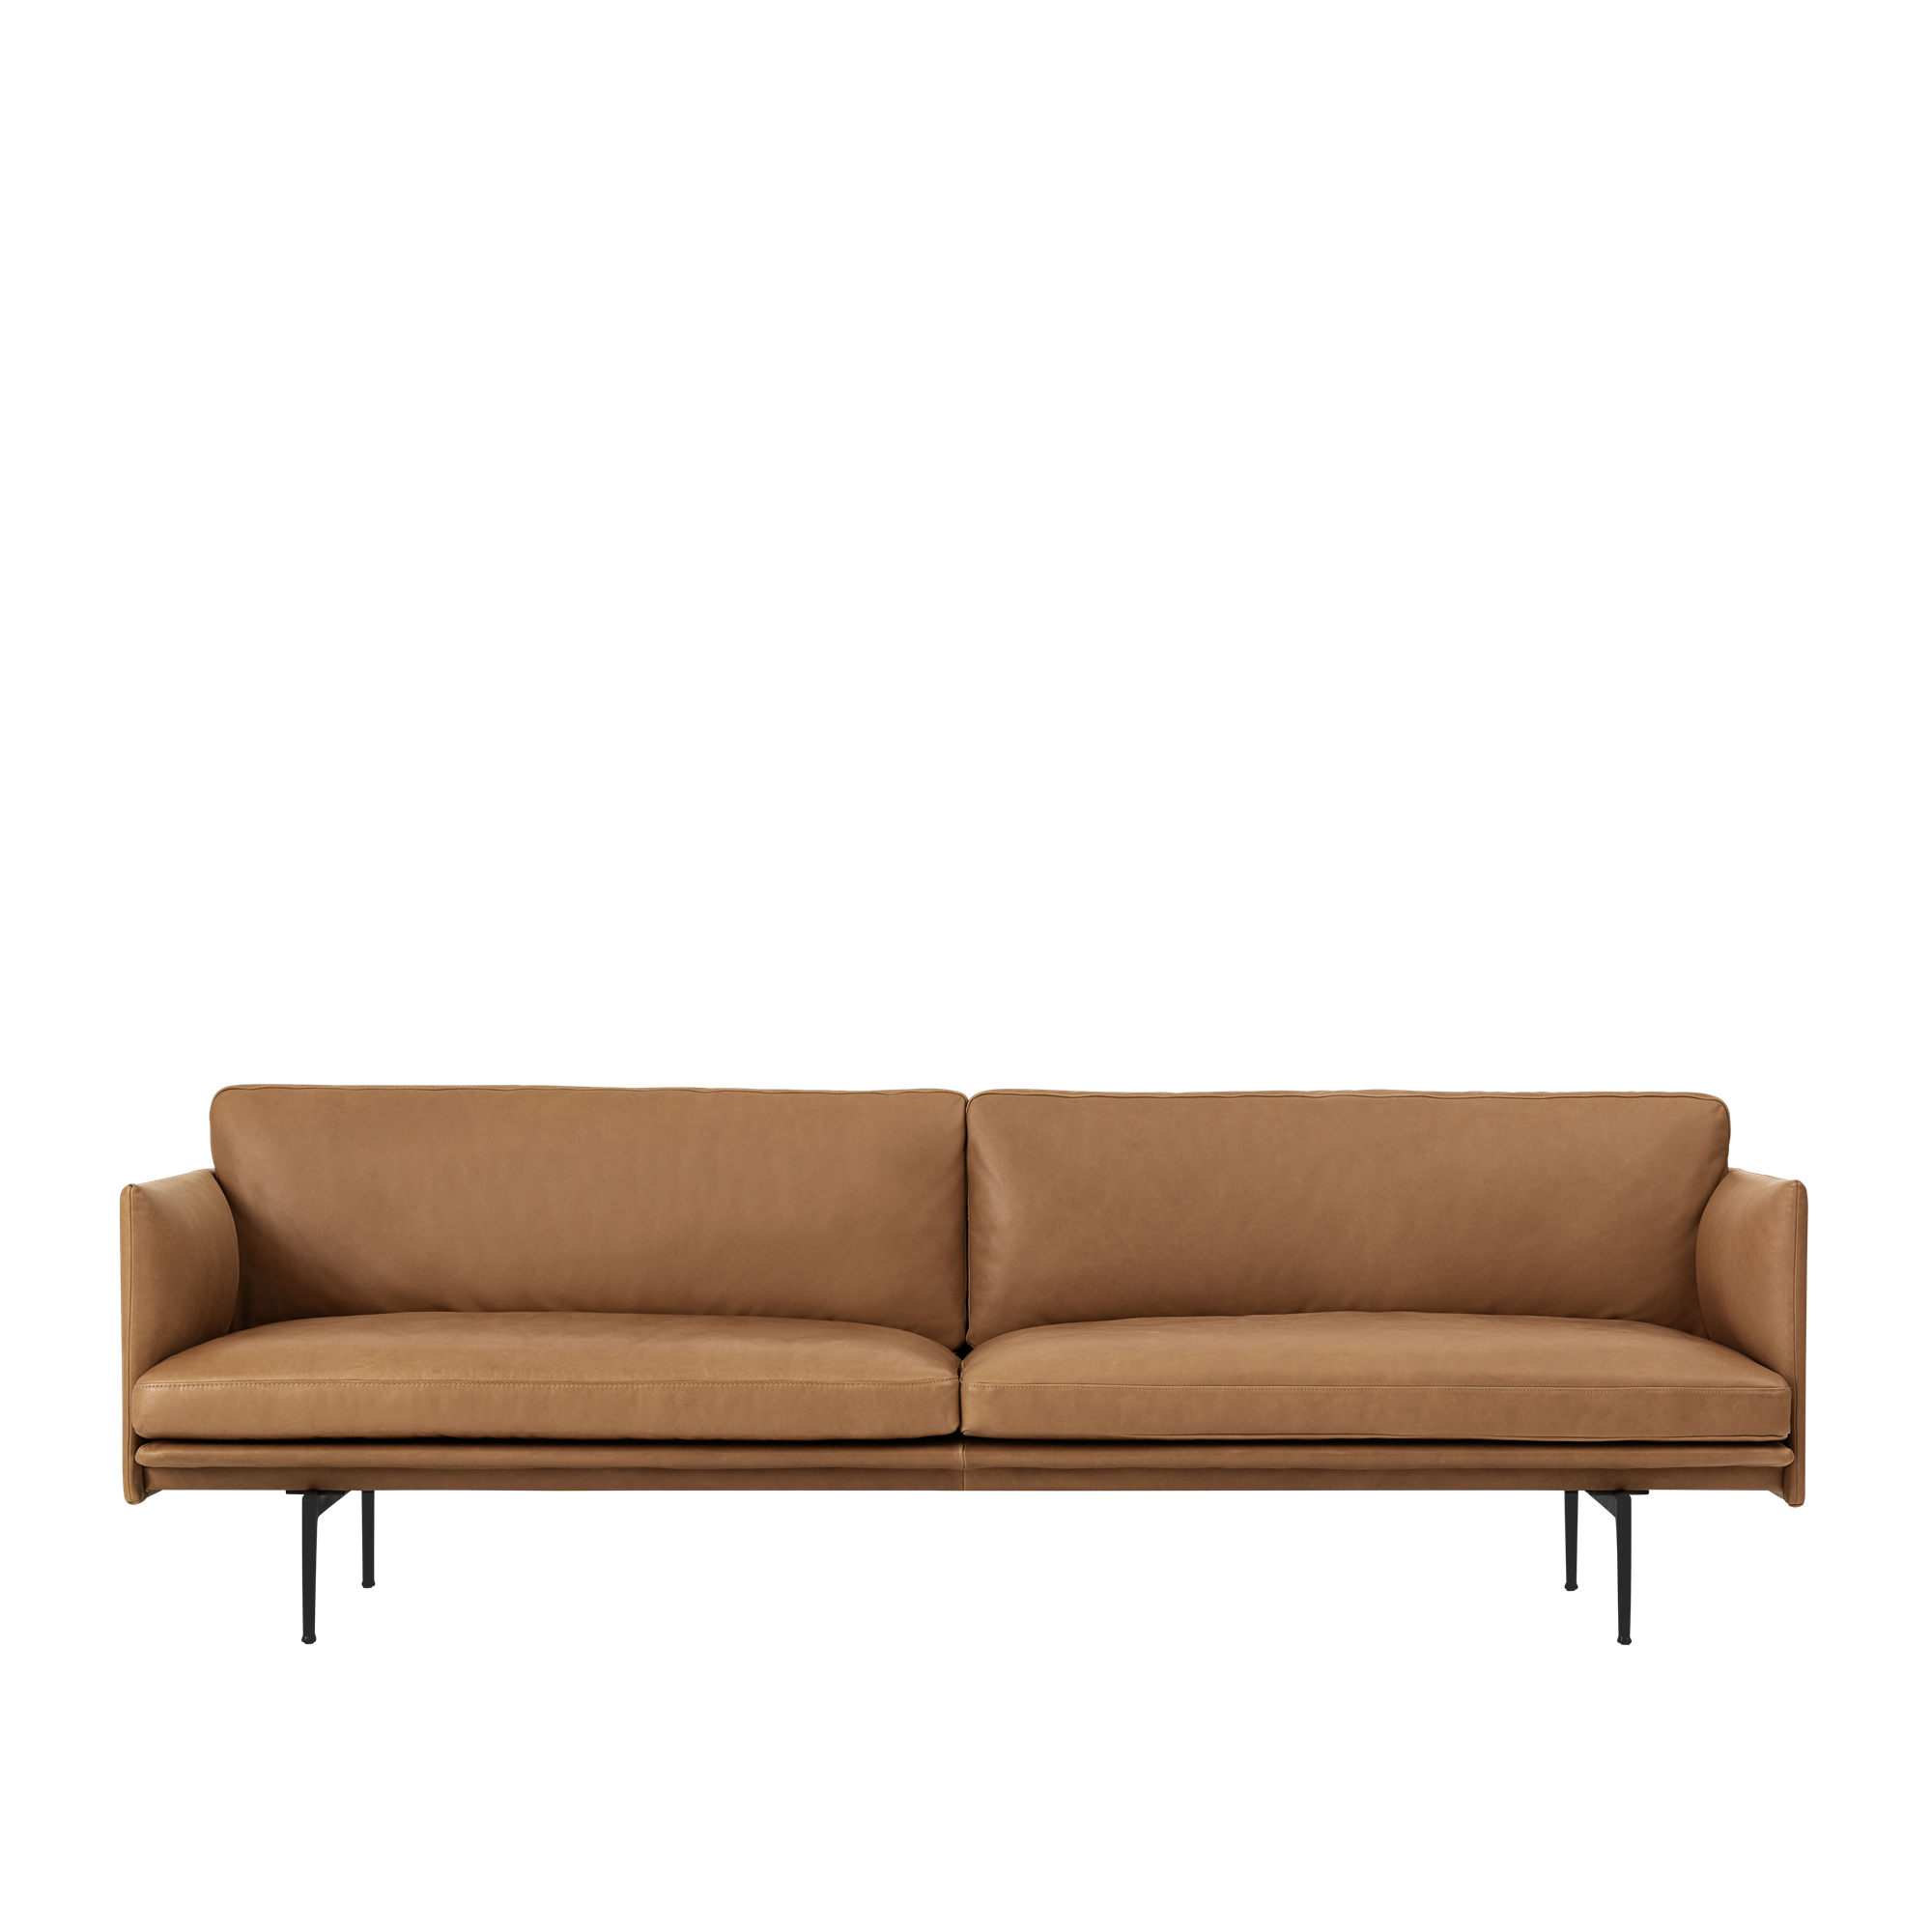 Full Size of Sofa Outline 2 Seater Modular Table Rest Sale Workshop Sofabord Connect Review Around Compose Airy Oslo Furniture List Xl Leather Series An Architectural In Sofa Muuto Sofa